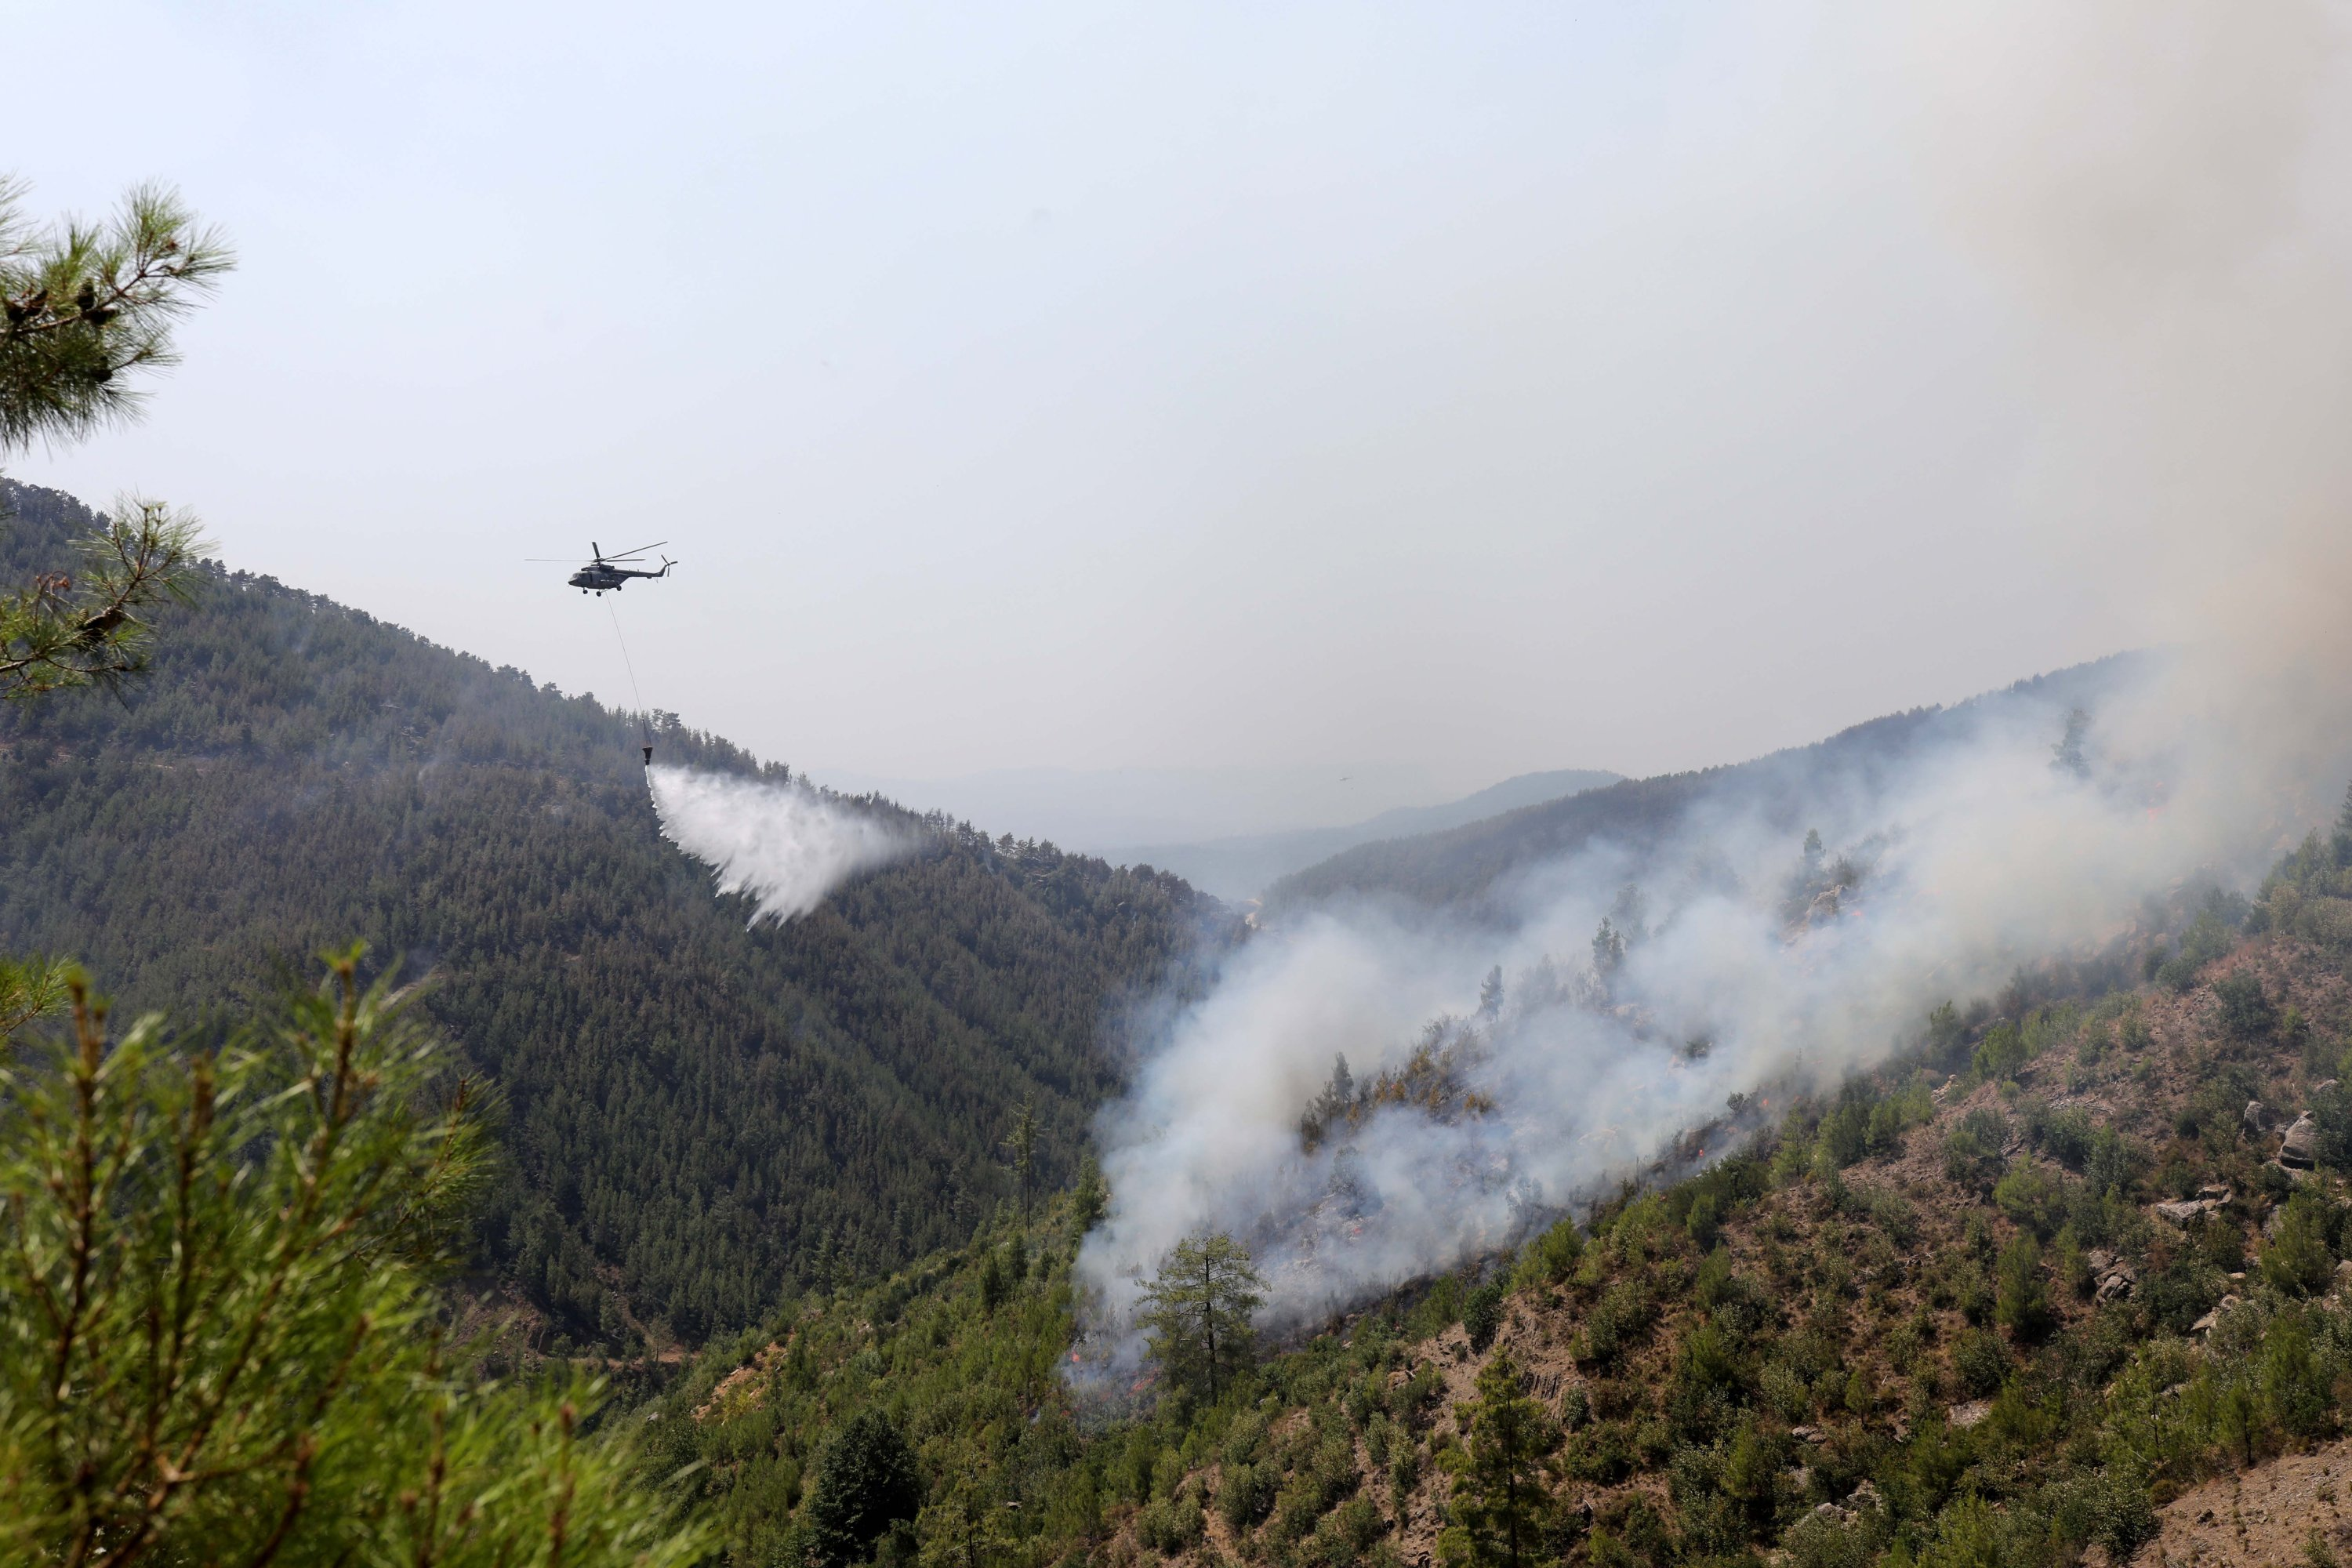 A helicopter dumps water on a forest fire, in Antalya, southern Turkey, Aug. 6, 2021. (DHA PHOTO)